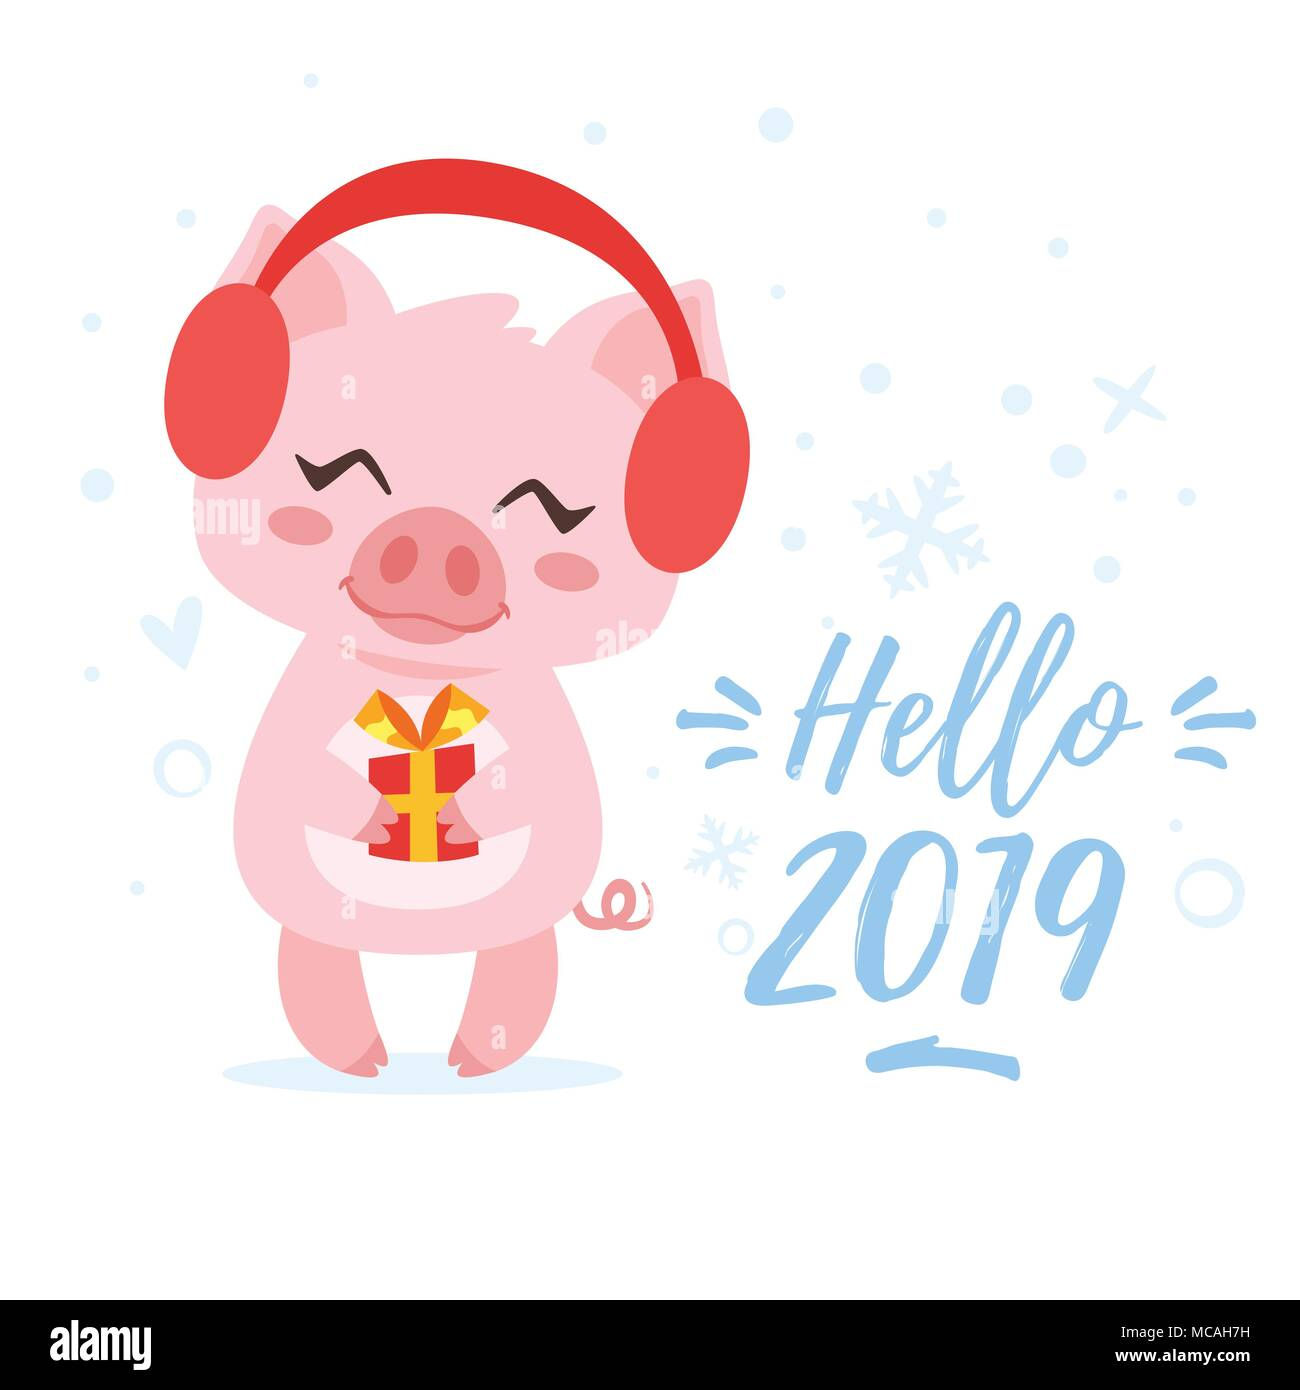 vector cartoon style illustration of happy 2019 new year greeting